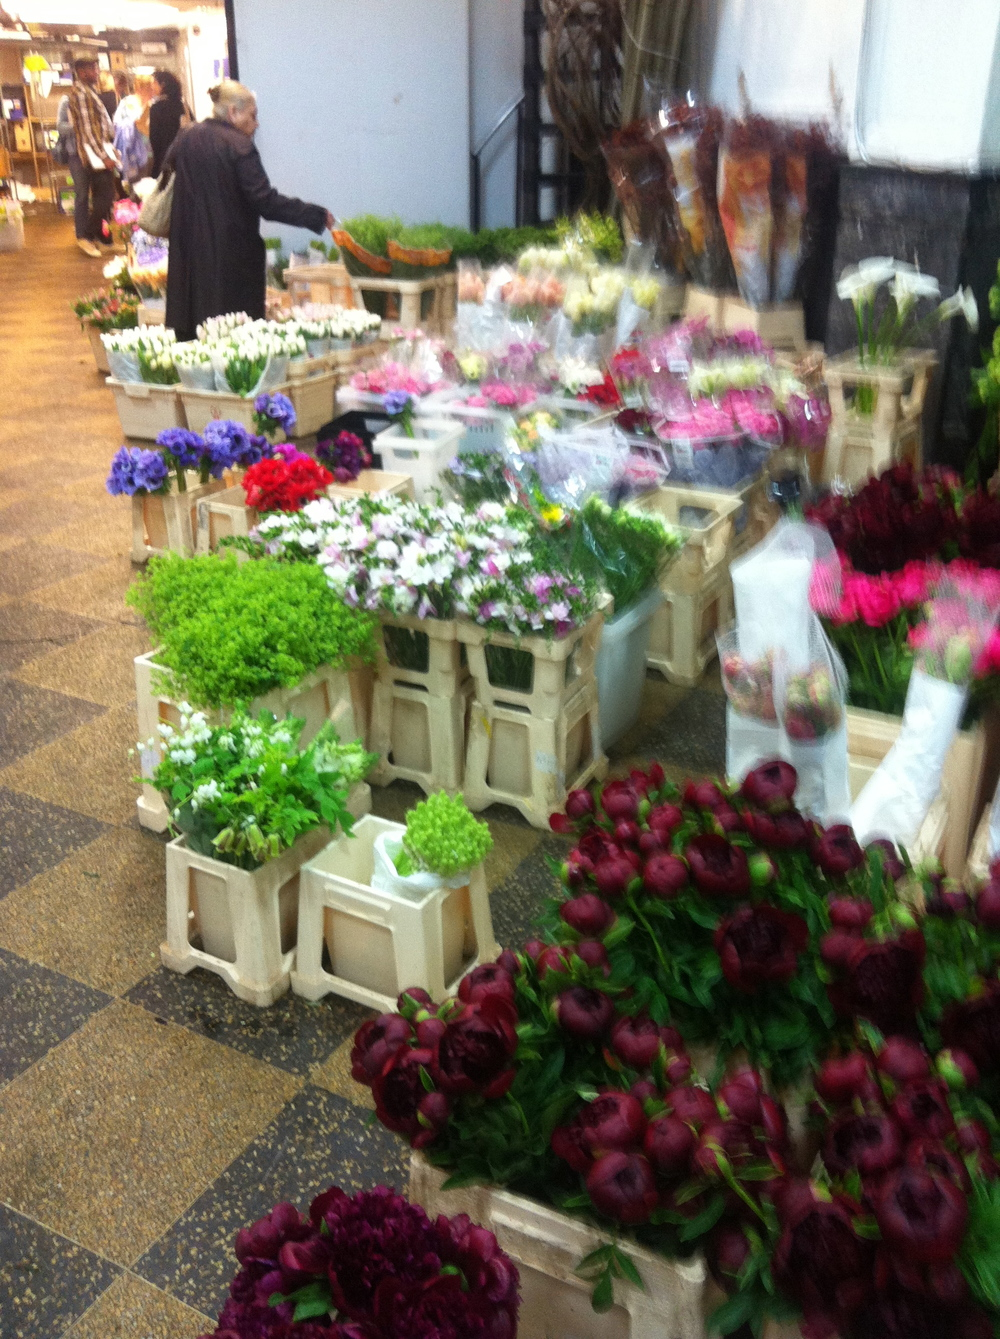 A walk in the Flower Market